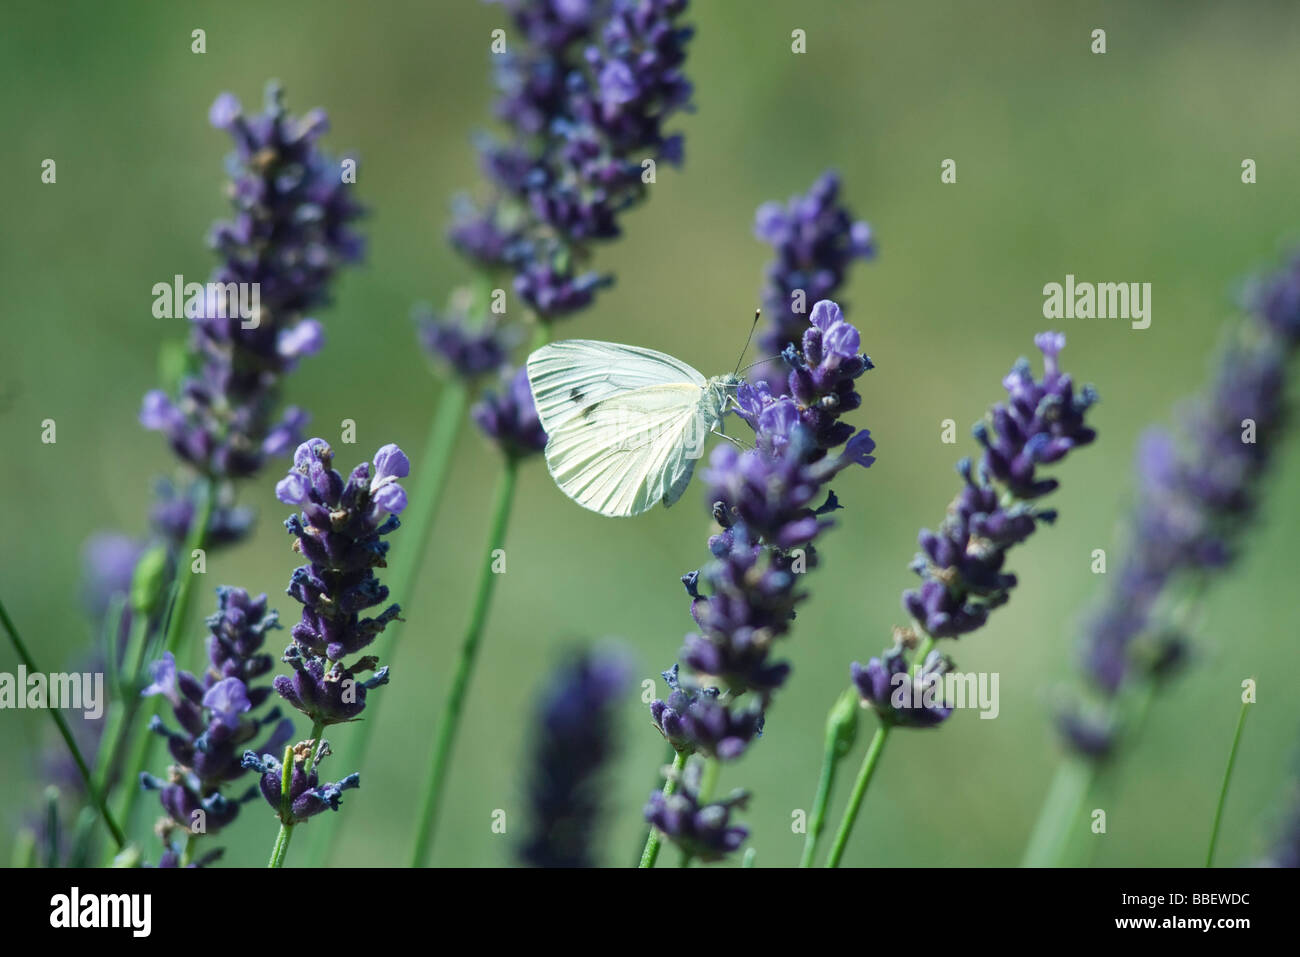 Small butterfly on lavender flowers Stock Photo